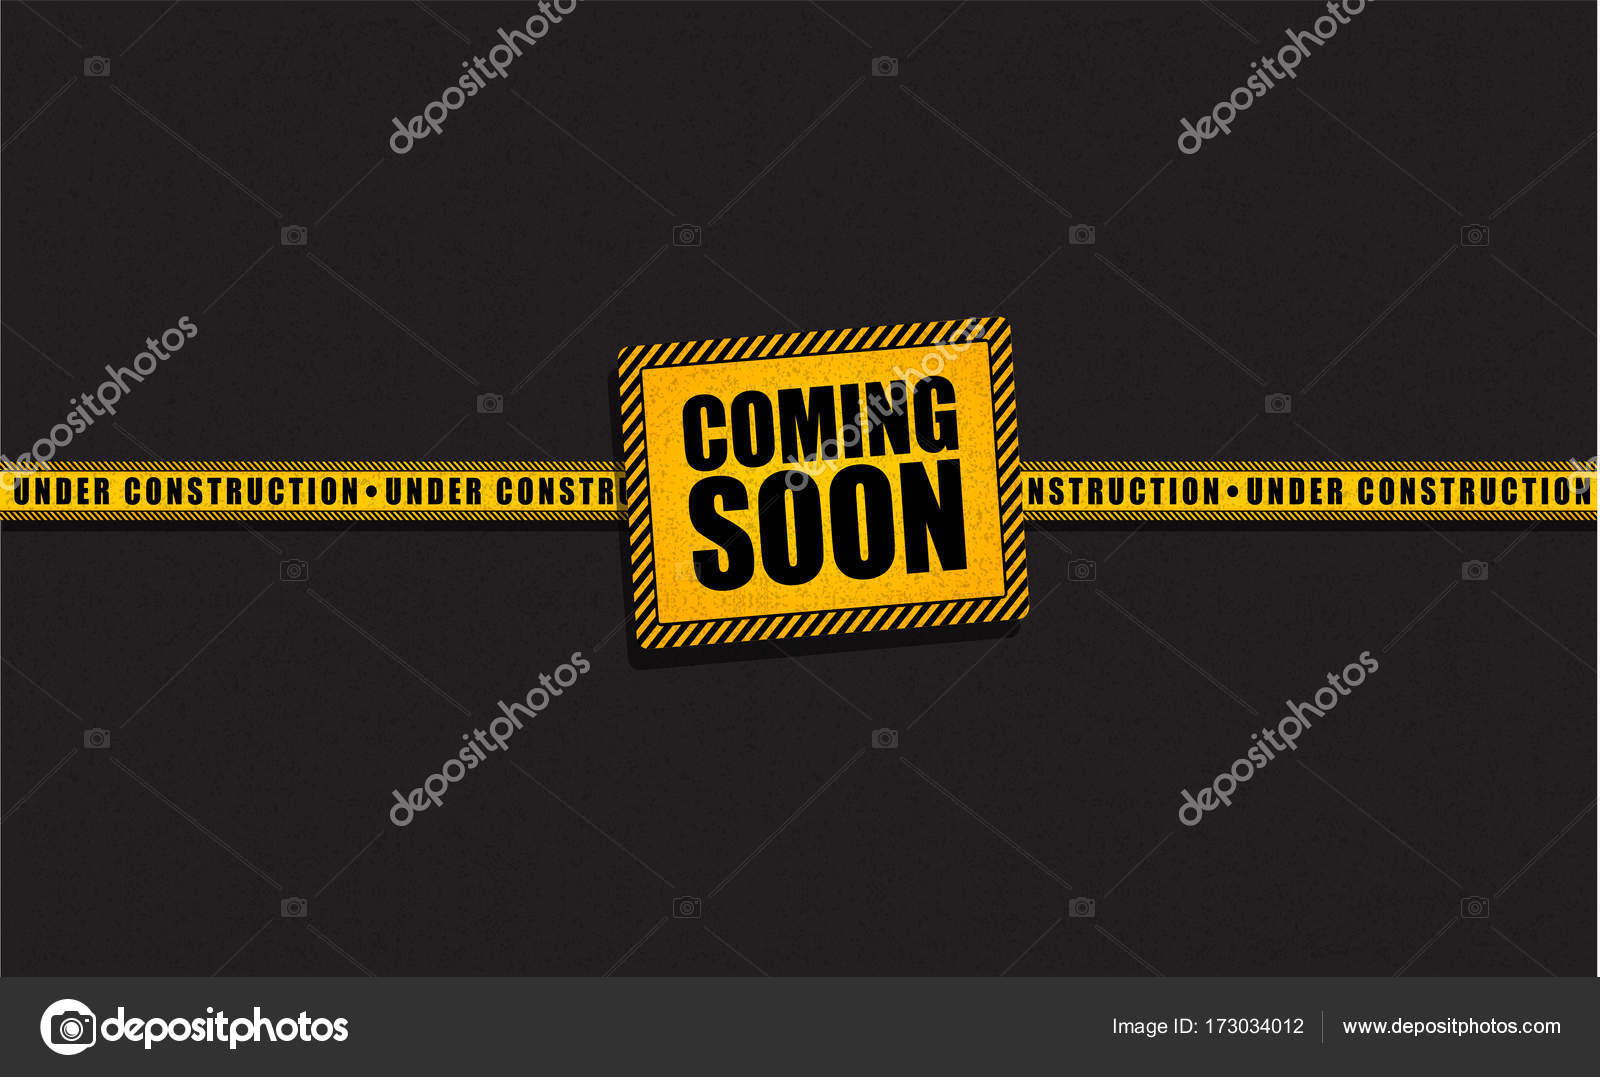 coming soon and under construction trendy yellow banner